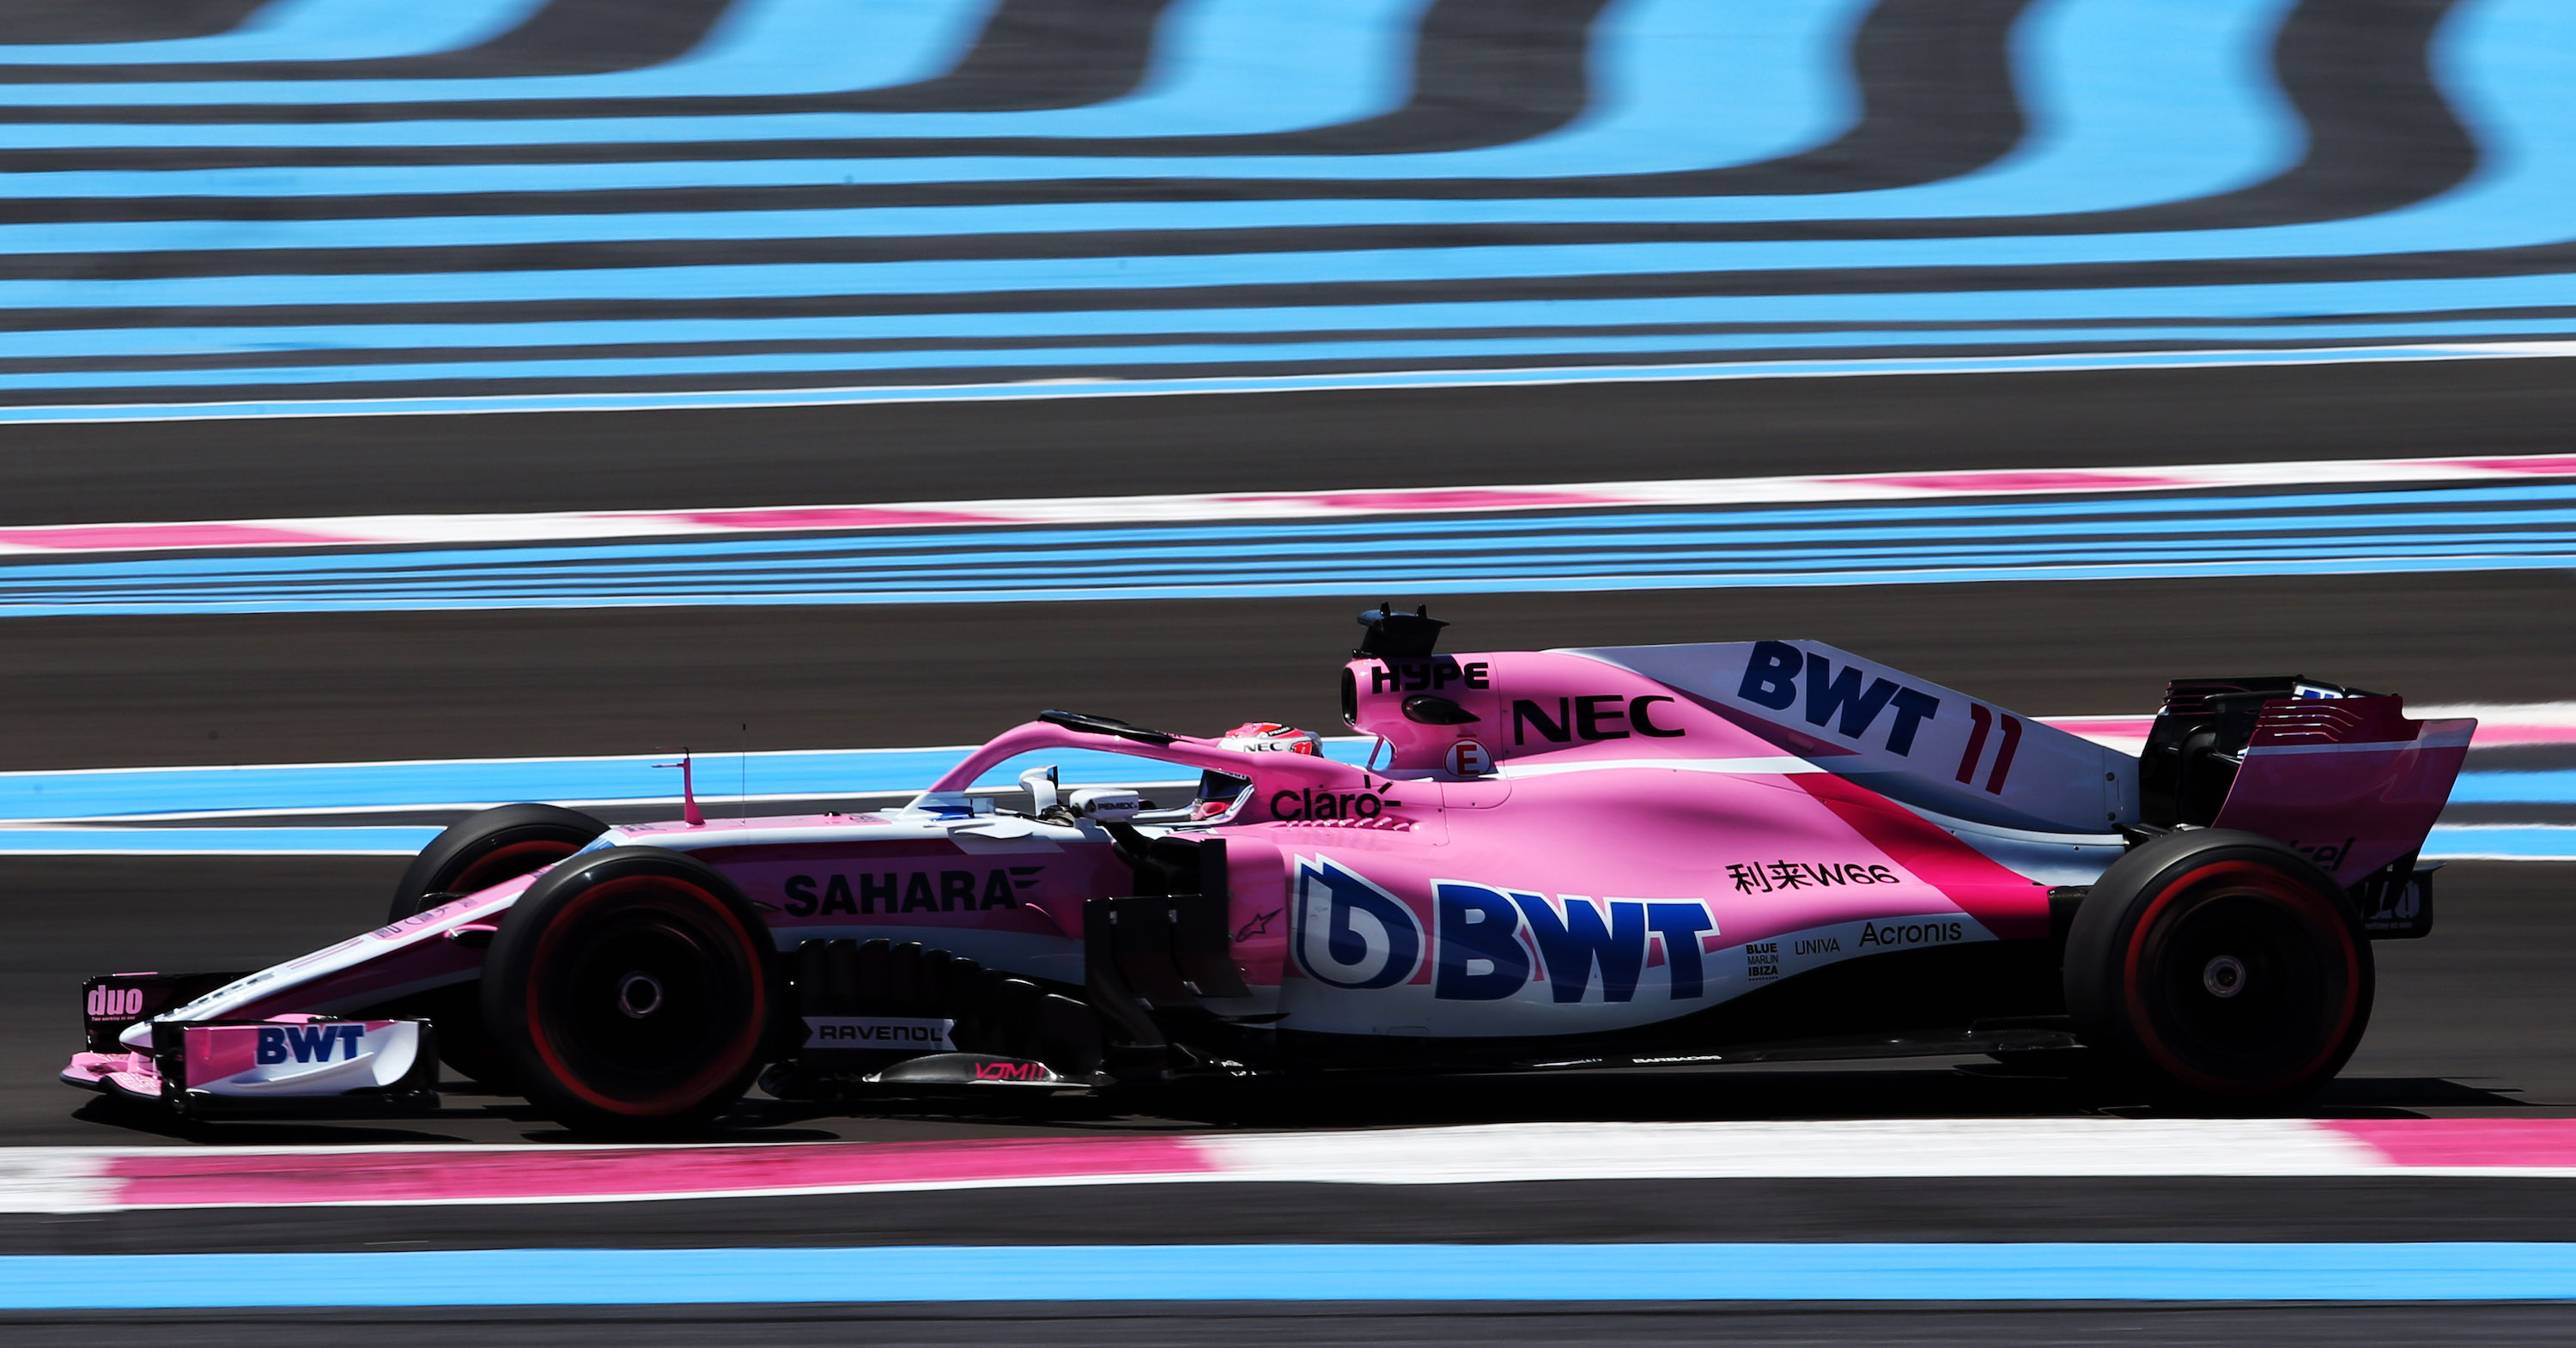 Motor Racing - Formula One World Championship - French Grand Prix - Practice Day - Paul Ricard, France